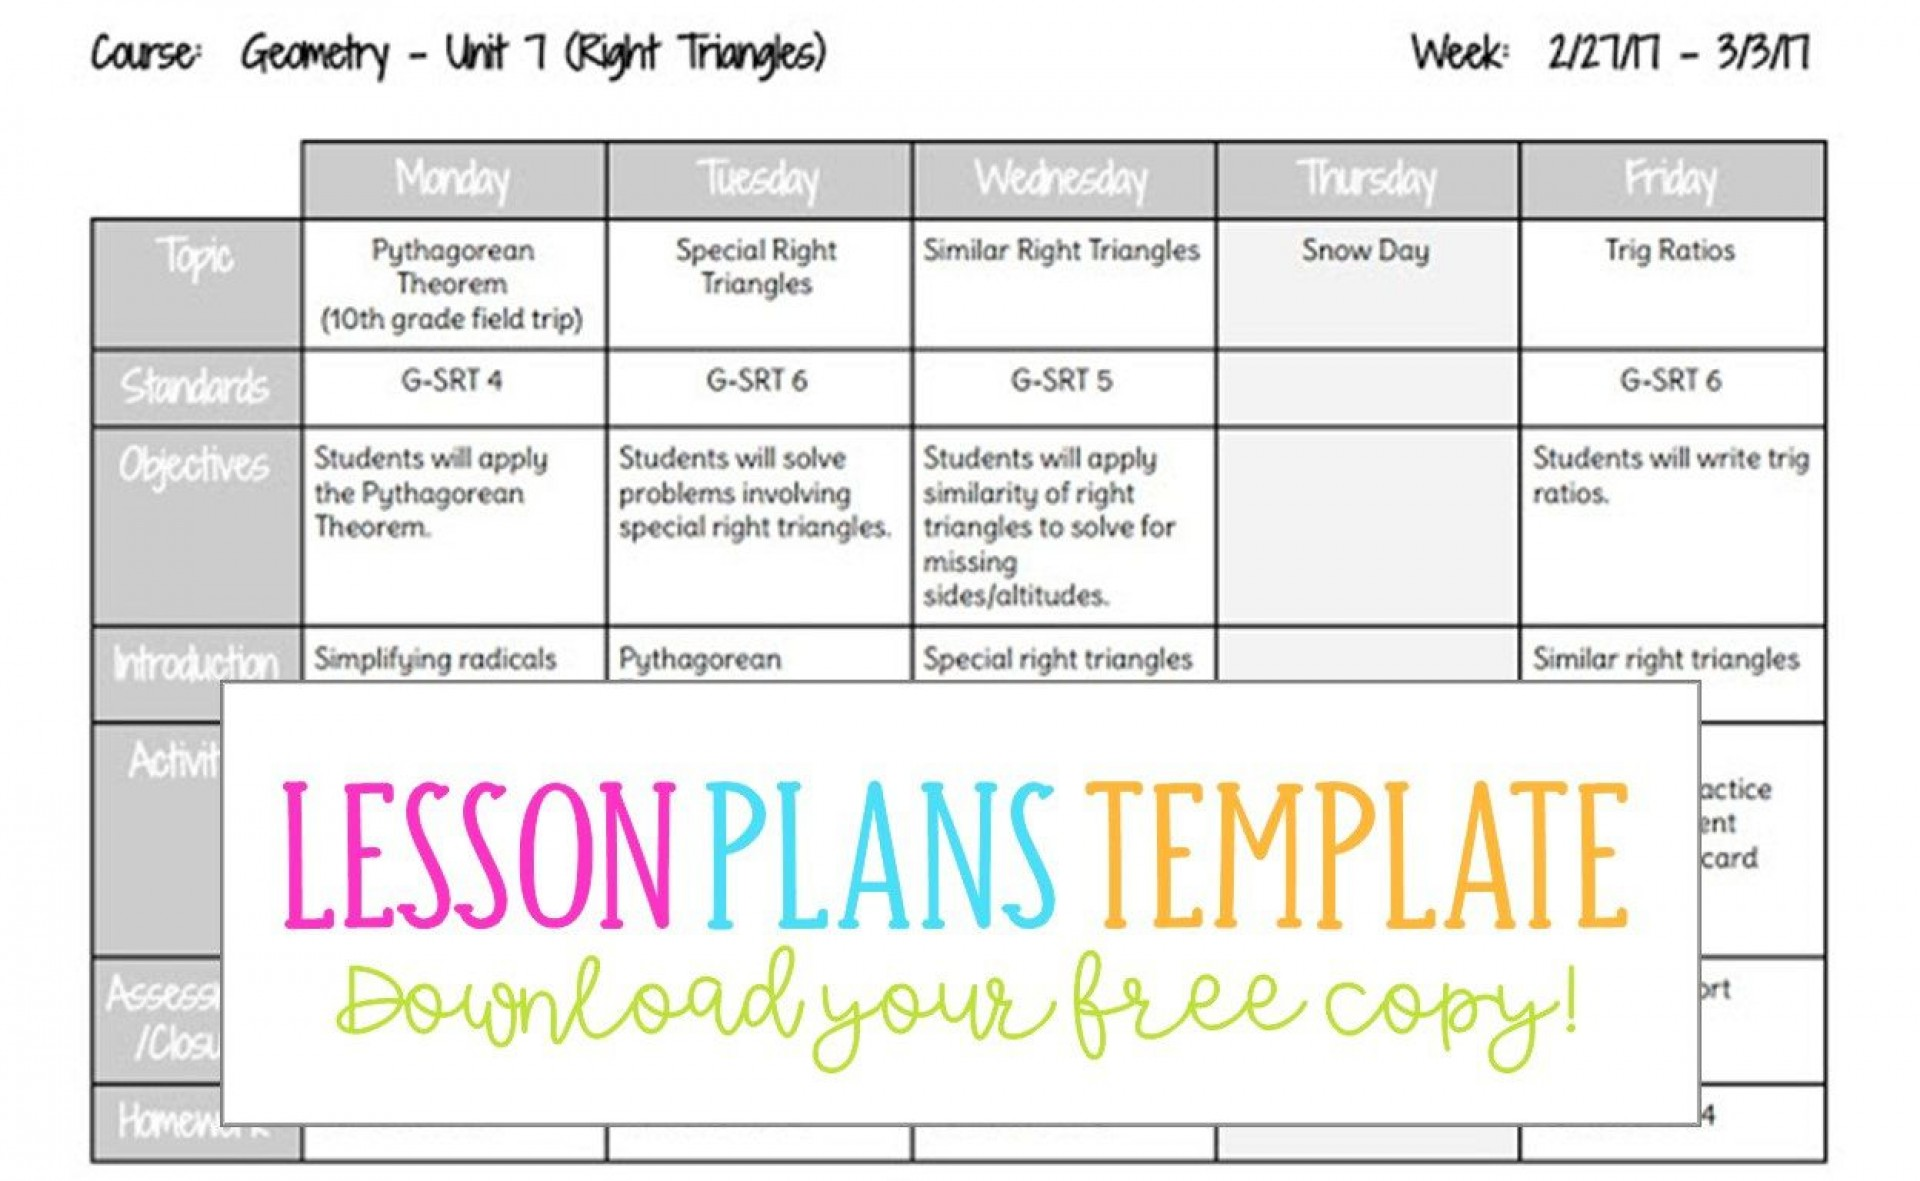 002 Awful Weekly Lesson Plan Template High School Def  Free Example For English Pdf Of Junior1920